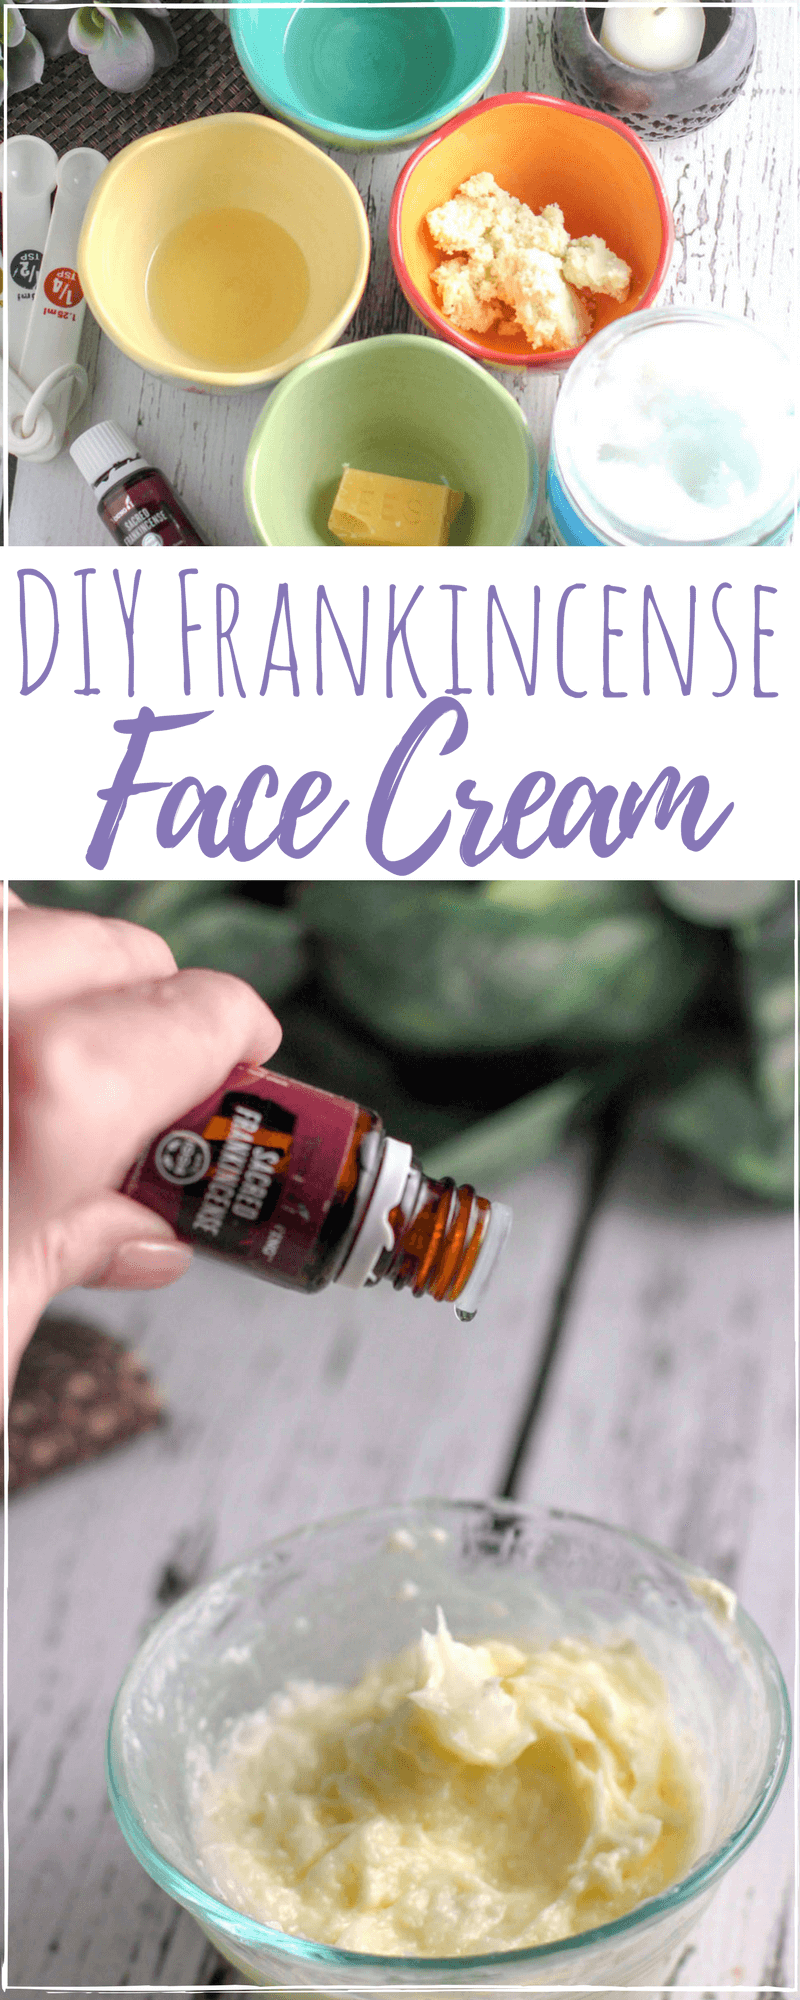 DIY Frankincense Face Cream | Firming and Tightening!